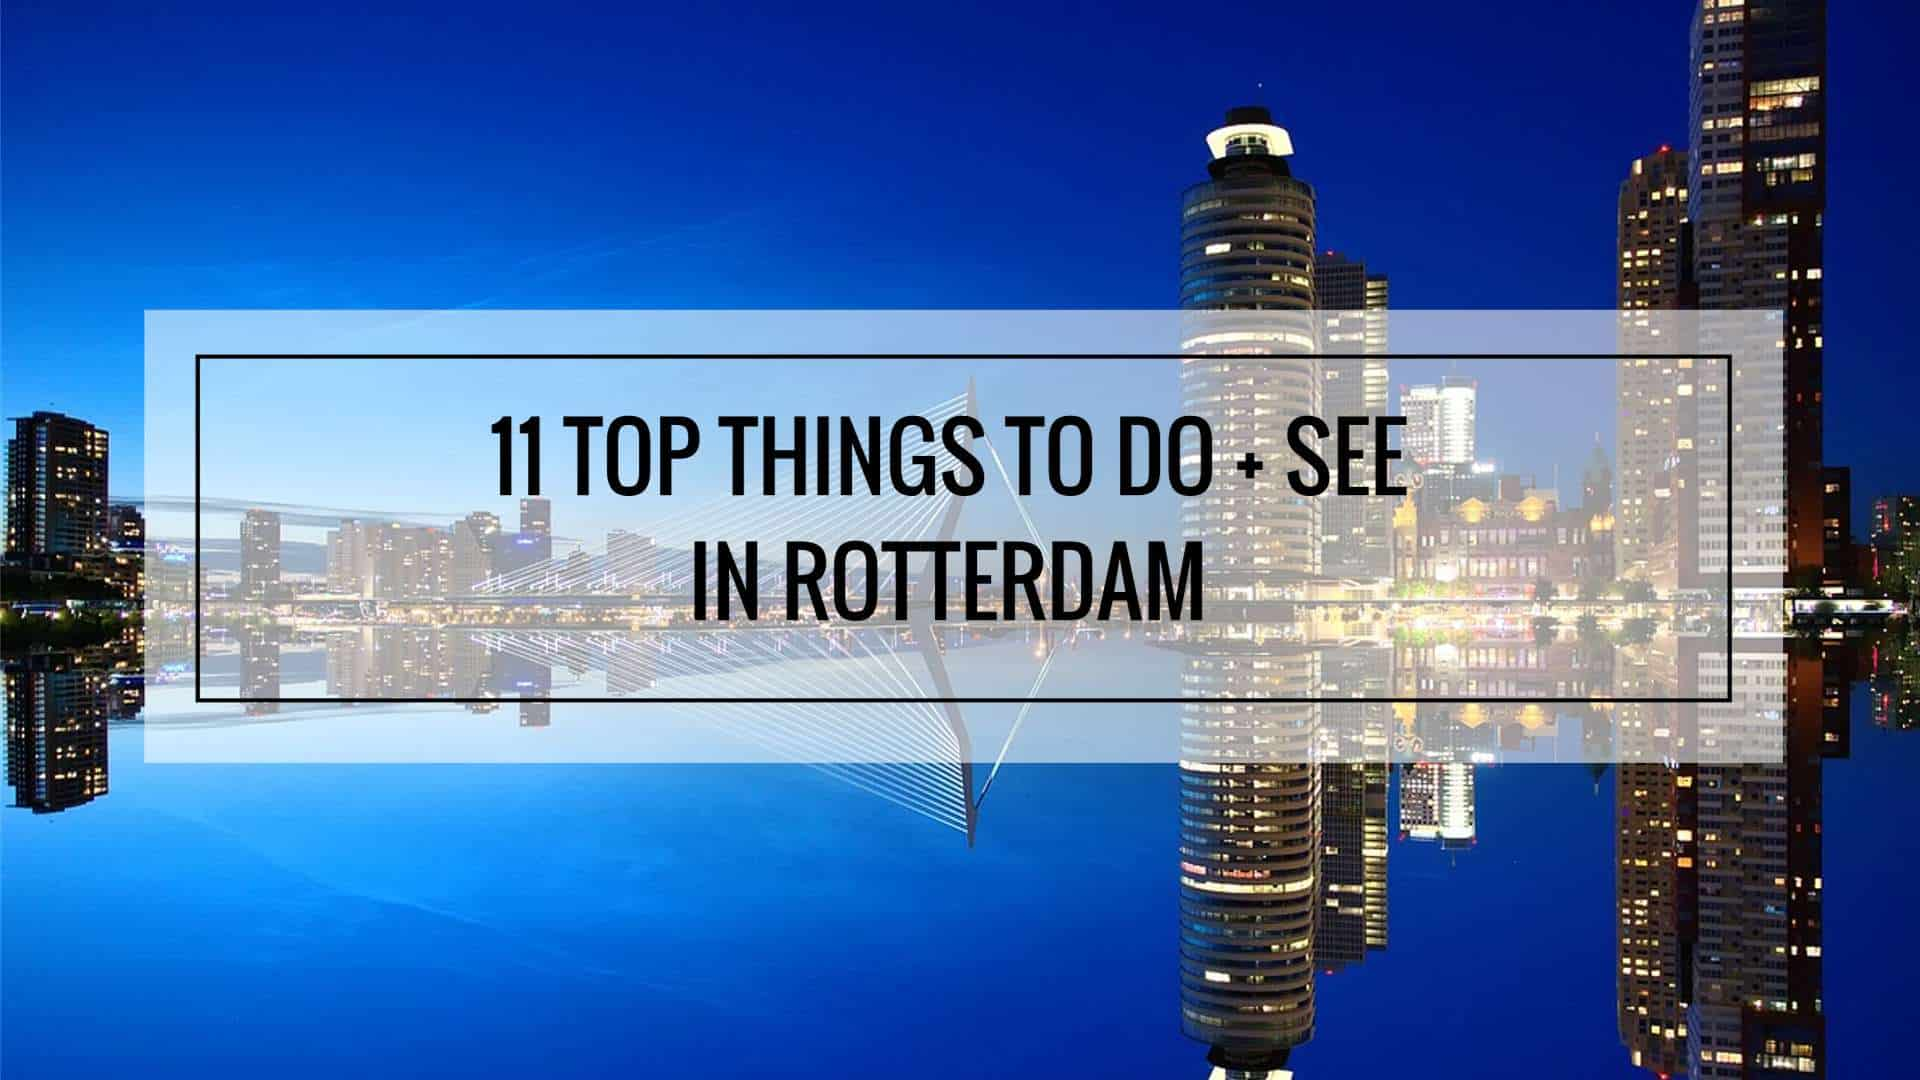 11 Things to Do + See in Rotterdam